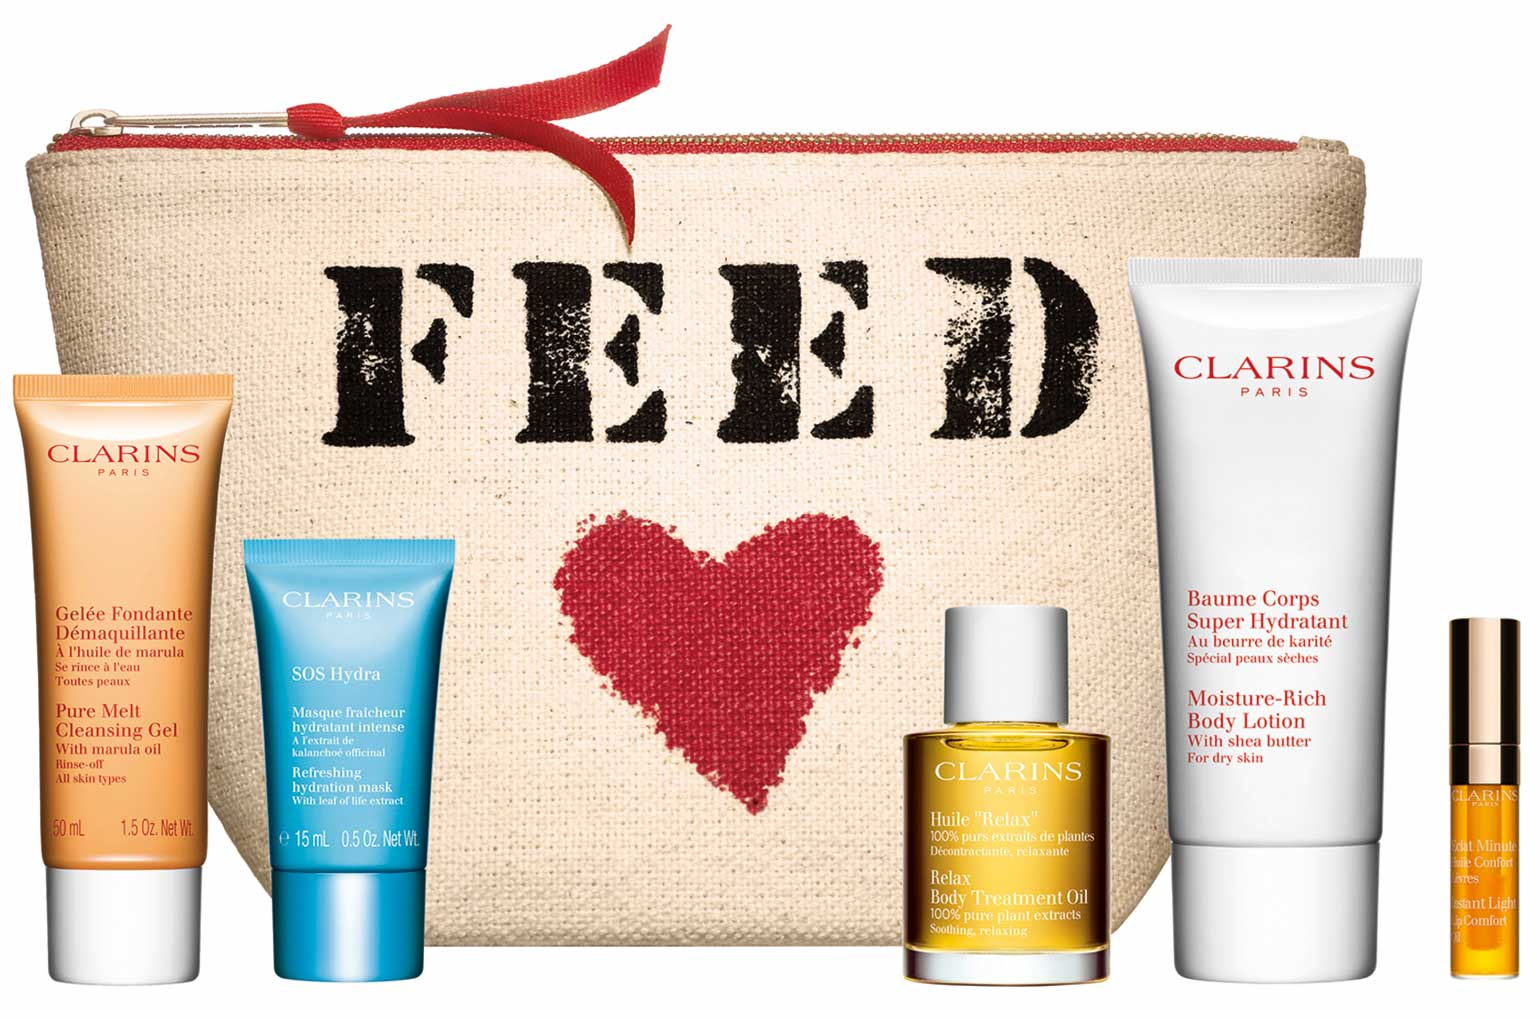 Clarins FEED 10 gift with purchase – Beauty from the heart